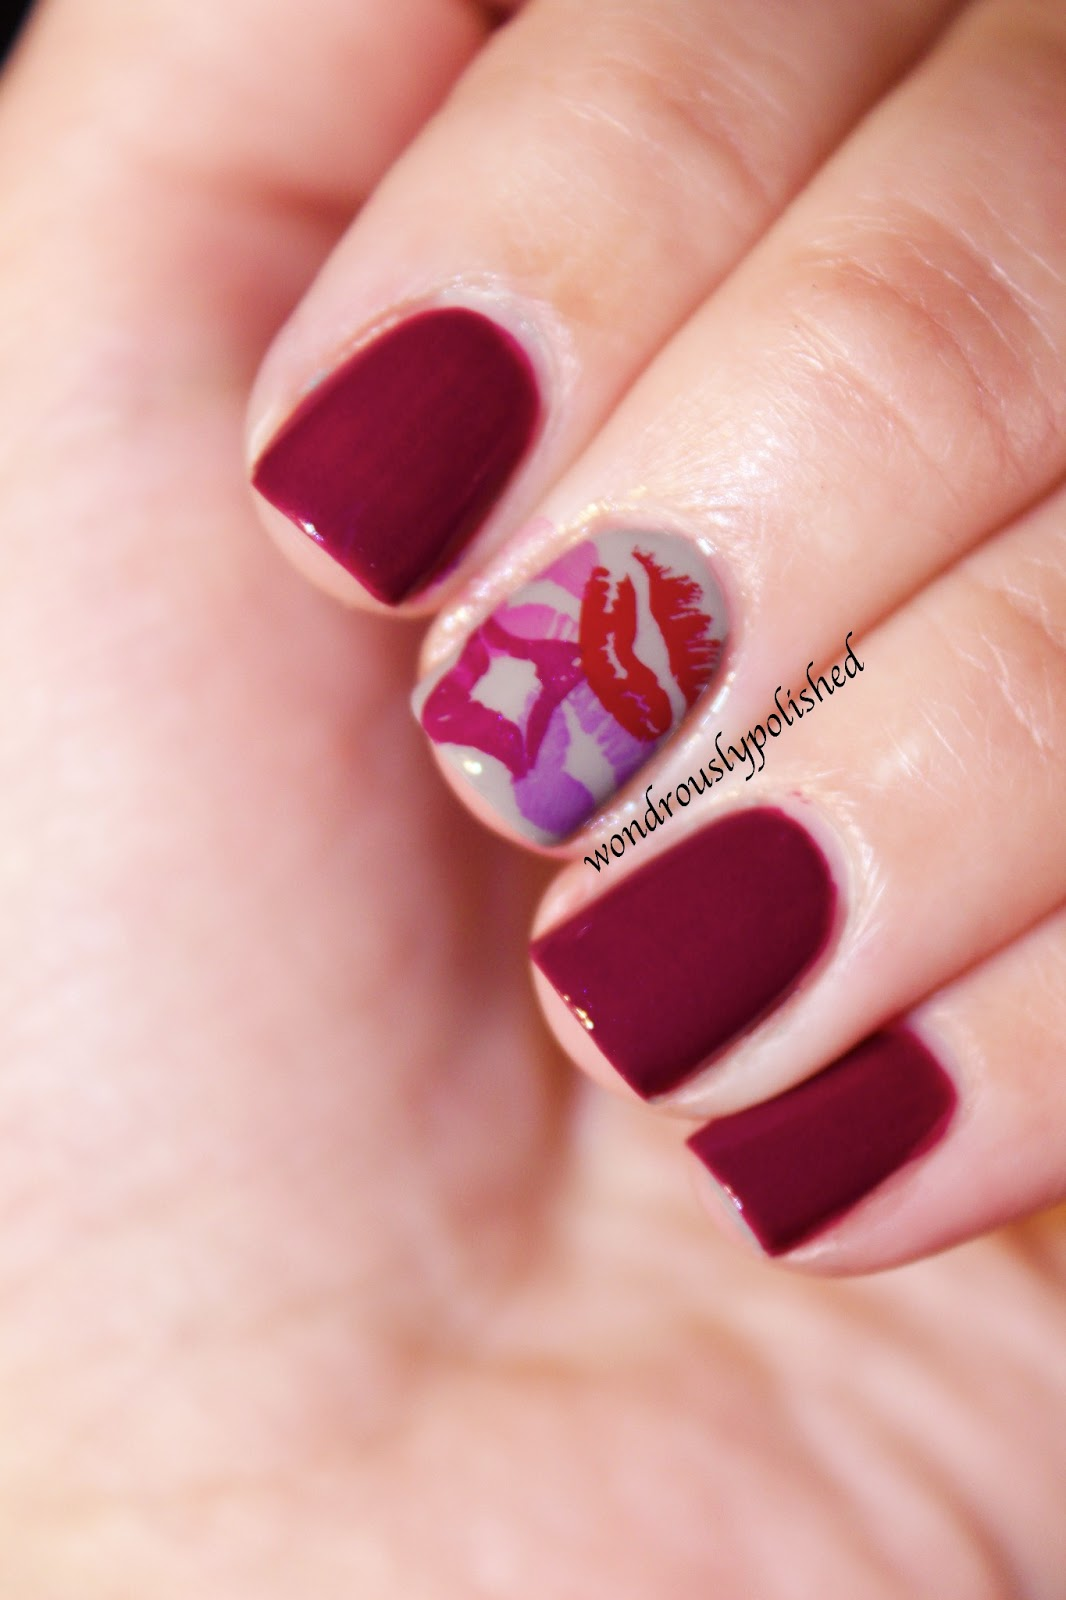 Wondrously Polished: February Nail Art Challenge